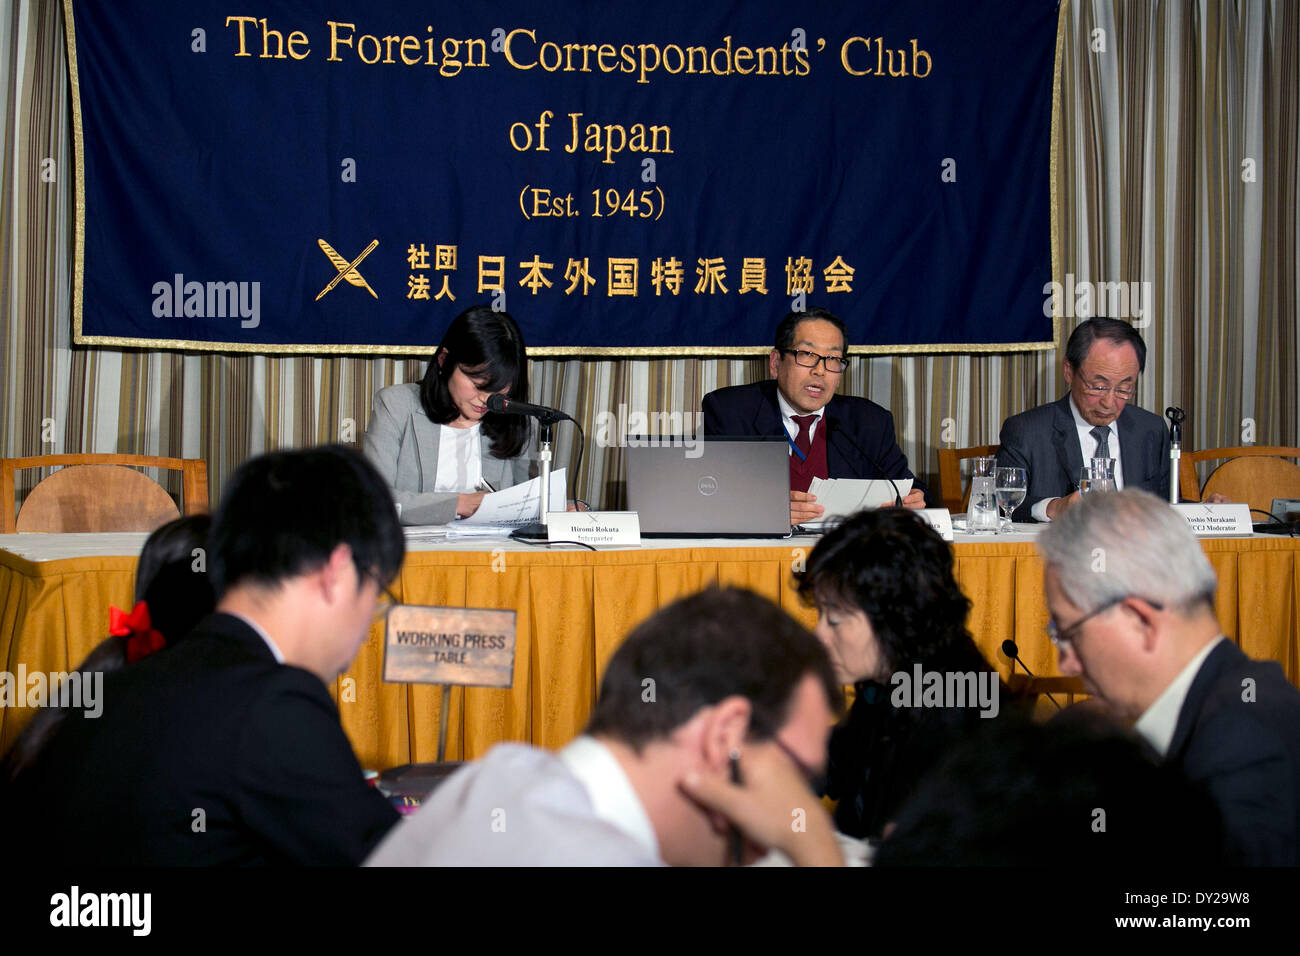 Tokyo, Japan - Eiichi Katahara, Professor & Director of the Regional Studies Department at The National Institute of Defense Studies of the Japanese Ministry of Defense presents the 'East Asia Strategic Review (EASR) 2014' at the Foreign Correspondents' Club of Japan (FCCJ) on April 4th, 2014. The EASR is an annual security report of the East Asia region, which provides the last year security situation of Japan, Korean Peninsula, China, Southeast Asia, Australia, Afghanistan, Russia and United States. The report is an independent analyses by The National Institute for Defense Studies (NIDS) is - Stock Image